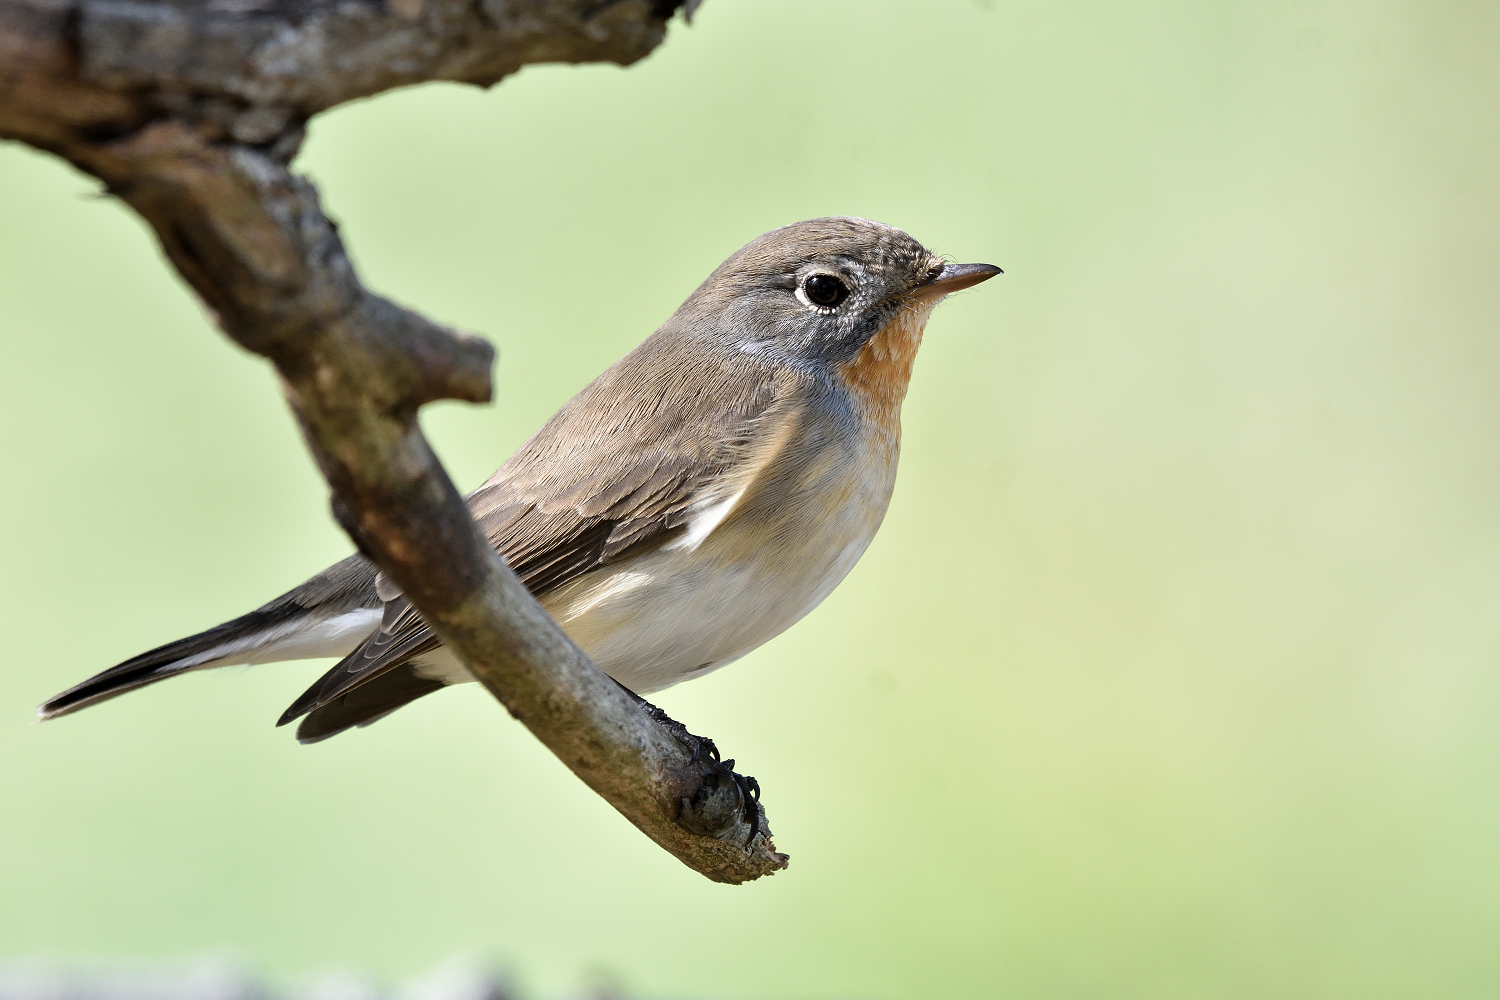 Red-breasted_Flycatcher_6521